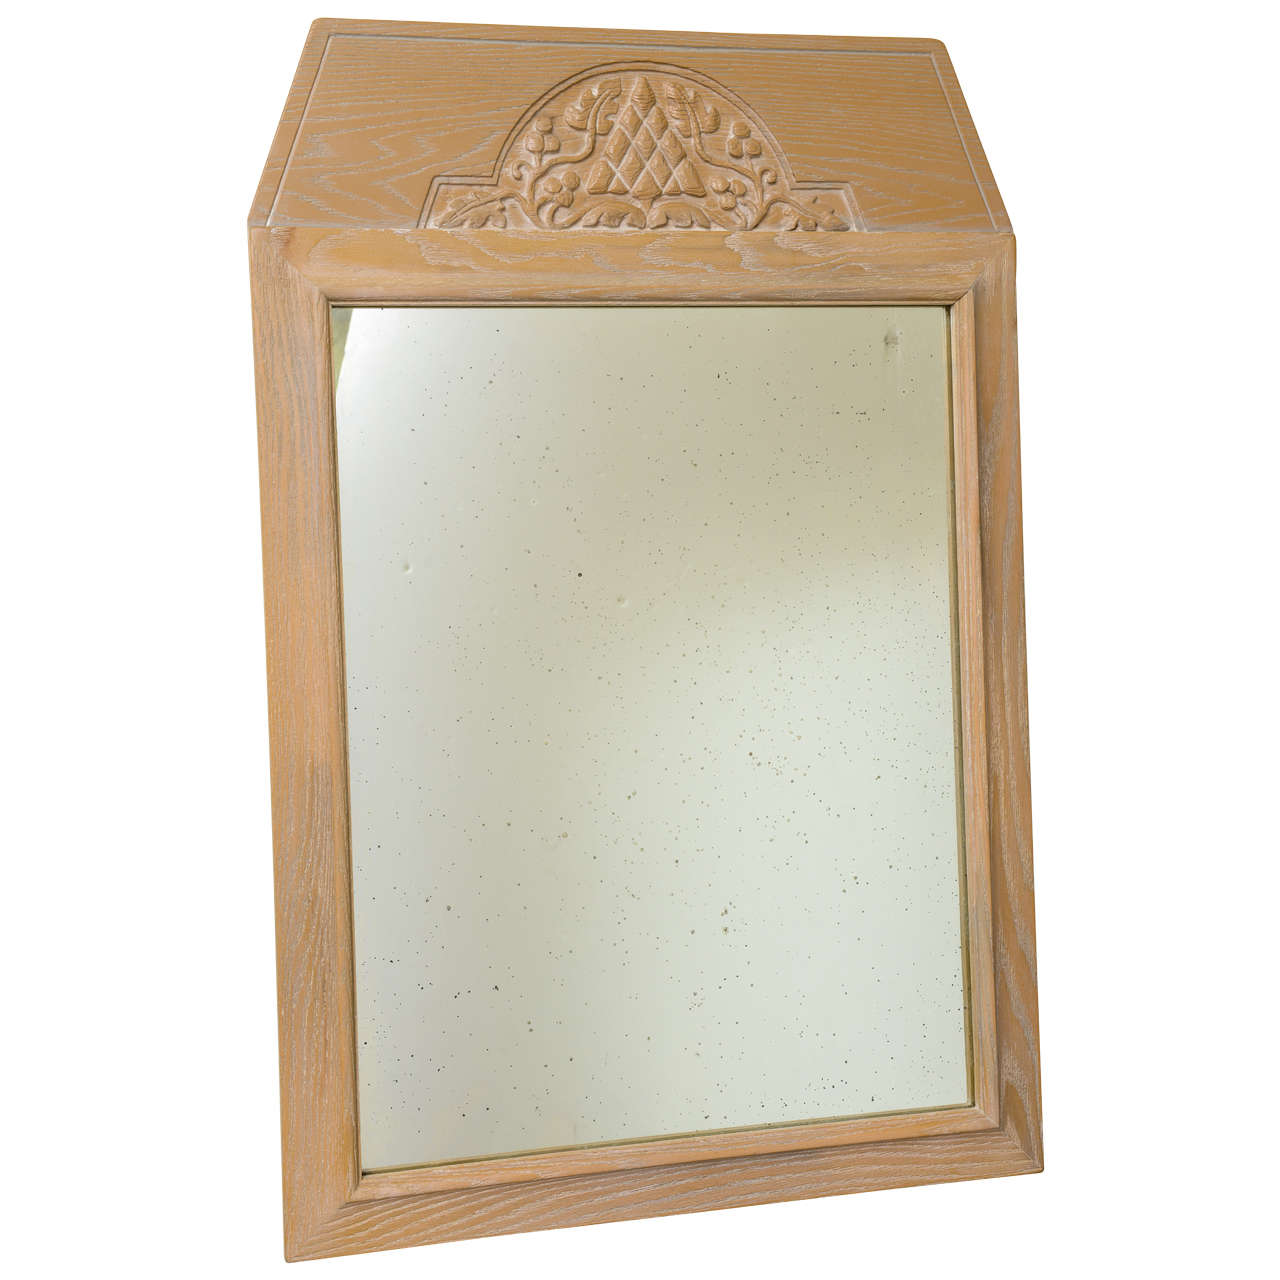 1940s Modern Carved Cerused Oak Mirror by Jamestown Lounge Co.